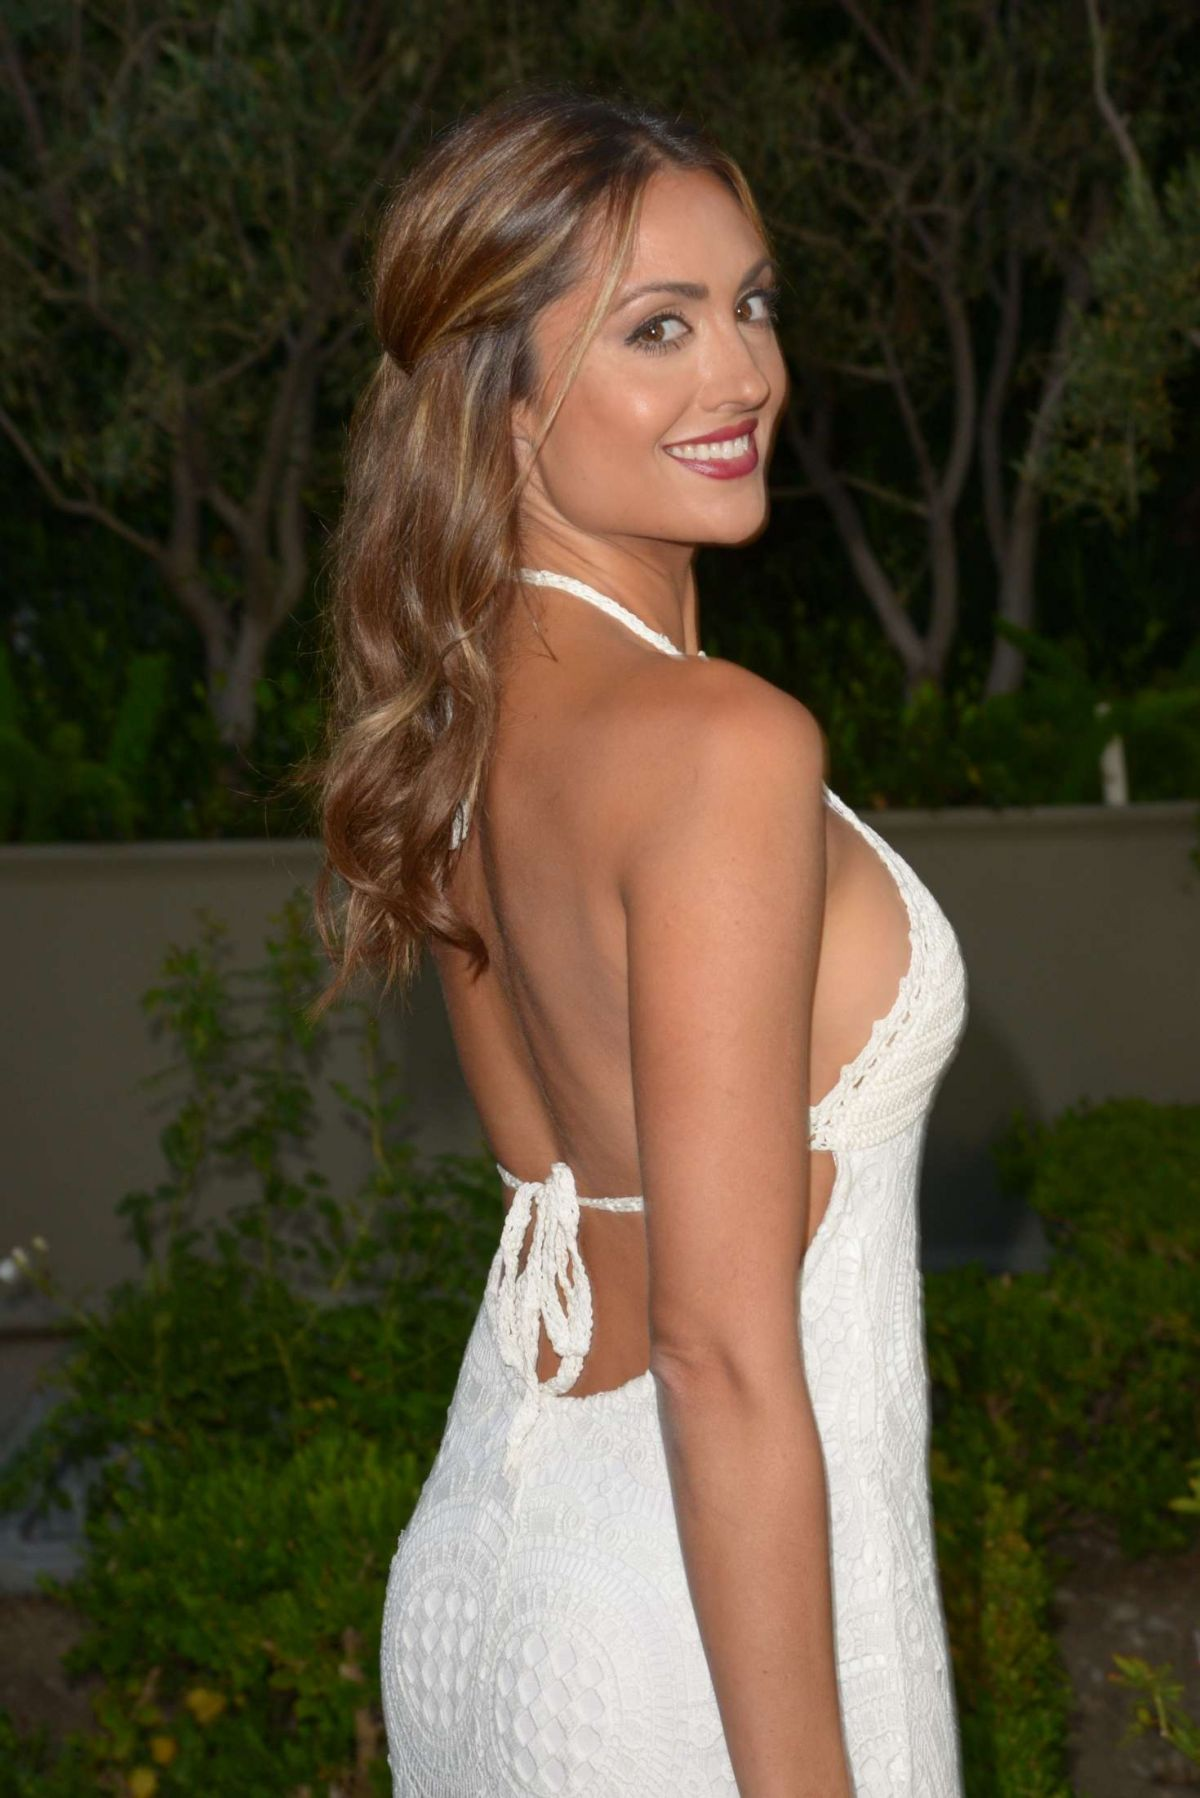 KATIE CLEARY at Mercy for Animals Hidden Heroes Gala 2016 in Los Angeles 09/11/2016